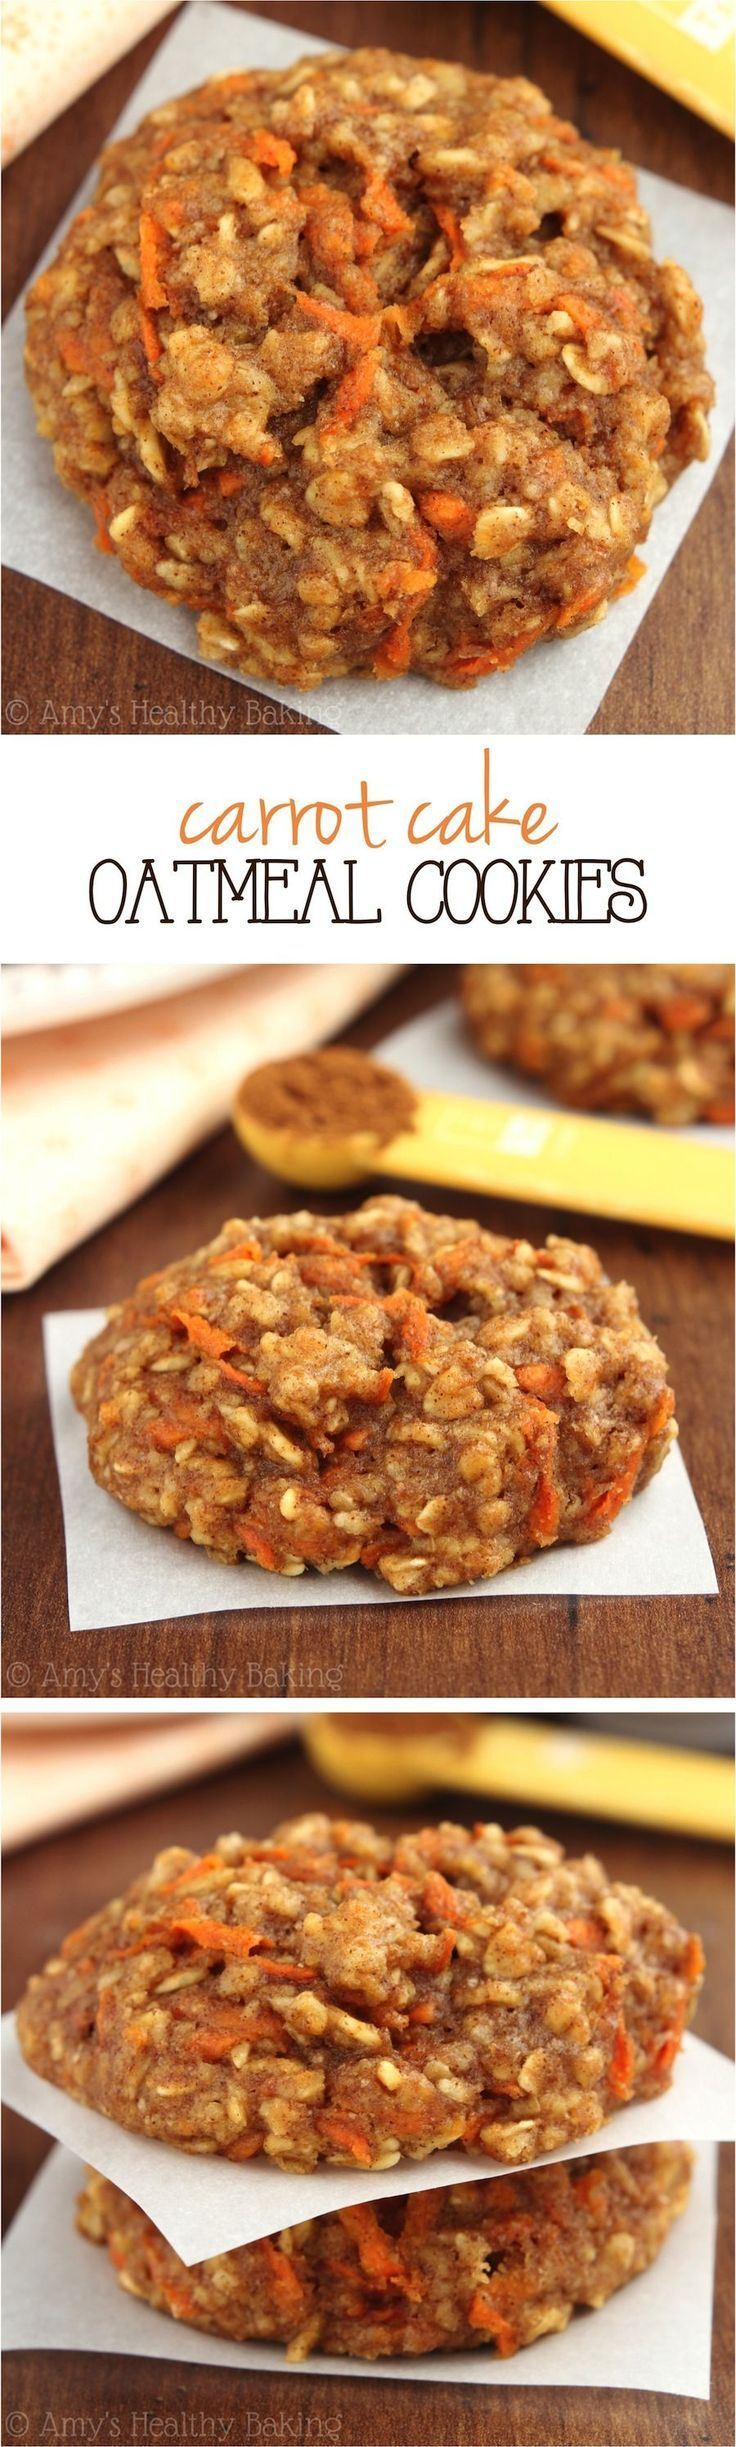 Clean Eating Carrot Cake Oatmeal Cookies Recipe plus 28 more of the most pinned Clean Eating recipes.